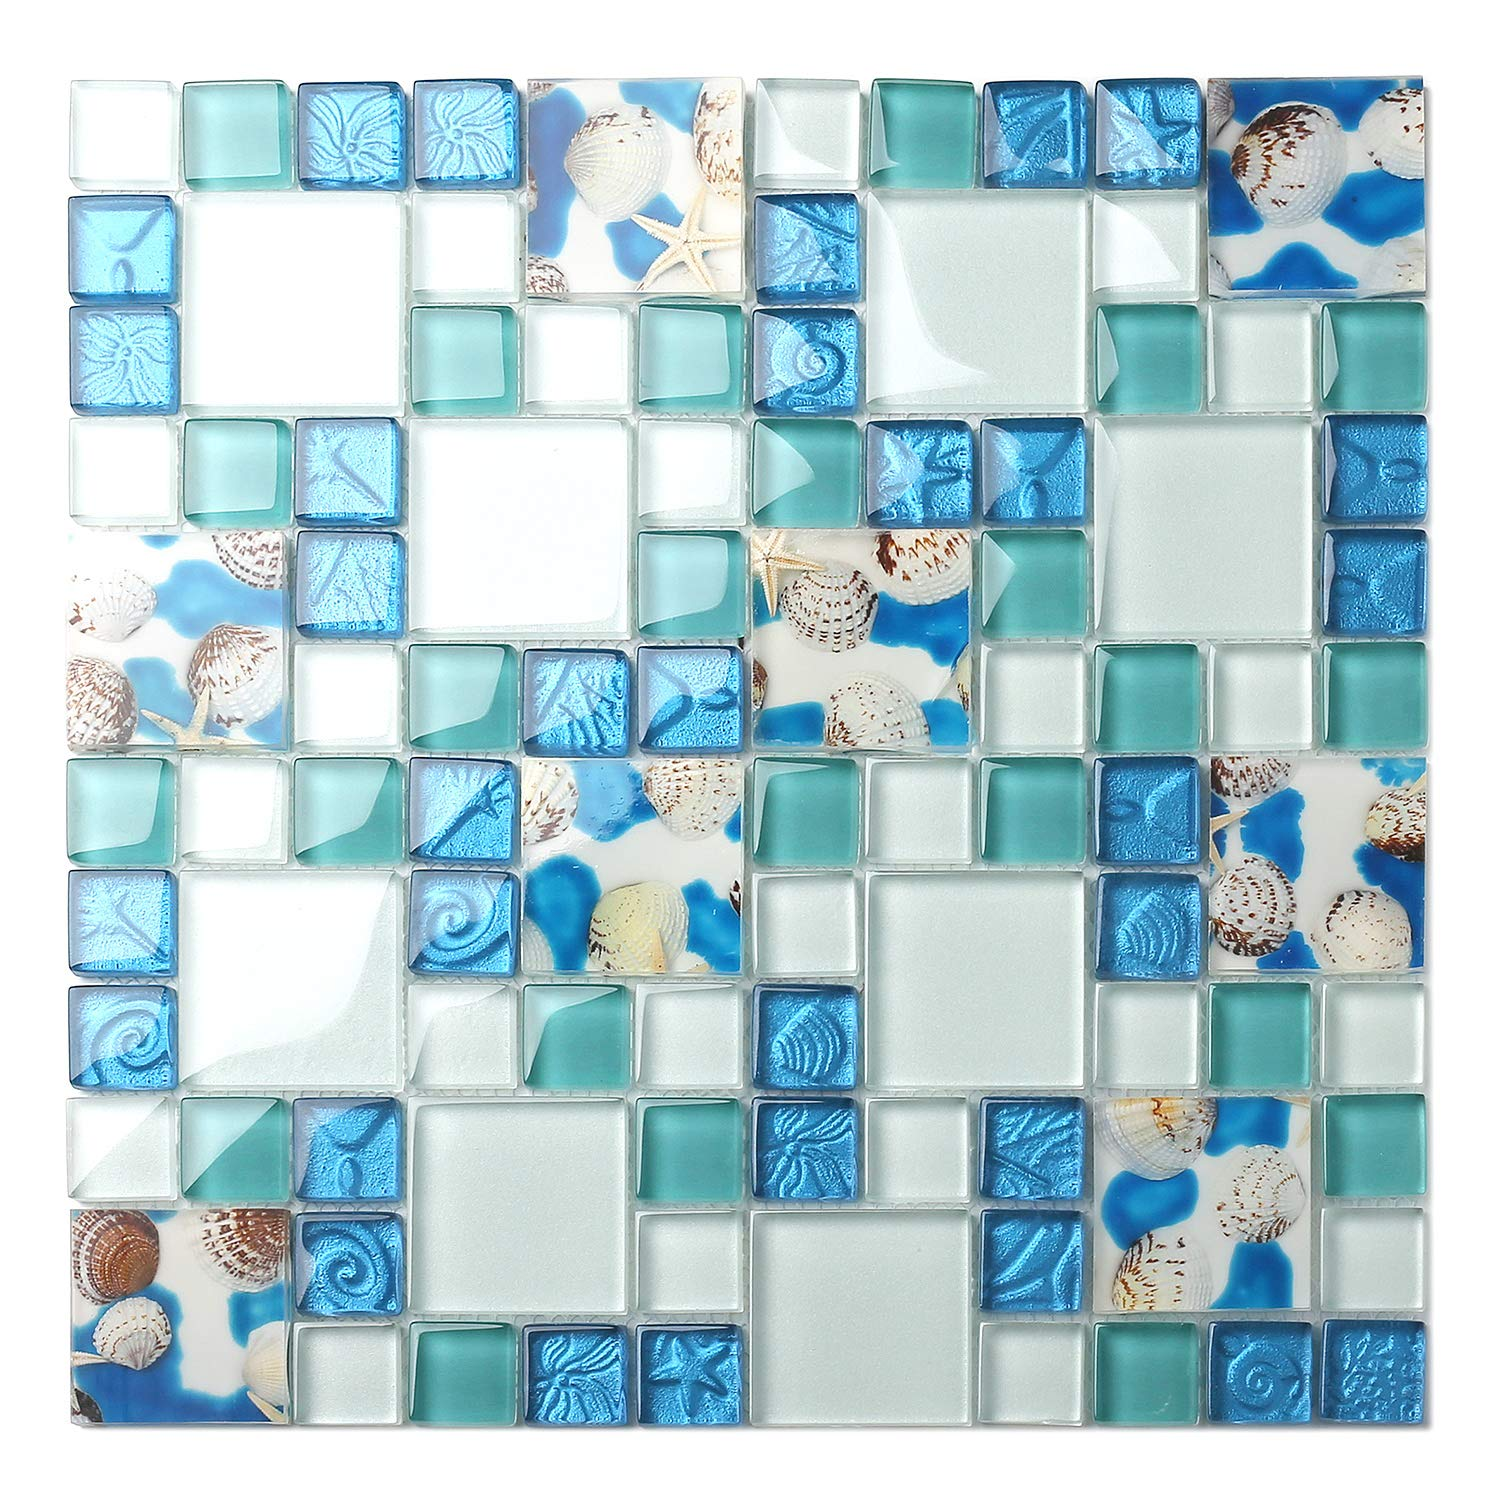 TST Mosaic Tiles Glass Conch Tiles Beach Style Sea Blue Glass Tile Glass Mosaics Wall Art Kitchen Backsplash Bathroom Design TSTGT370 (5 Square Feet) by BLUJELLYFISH